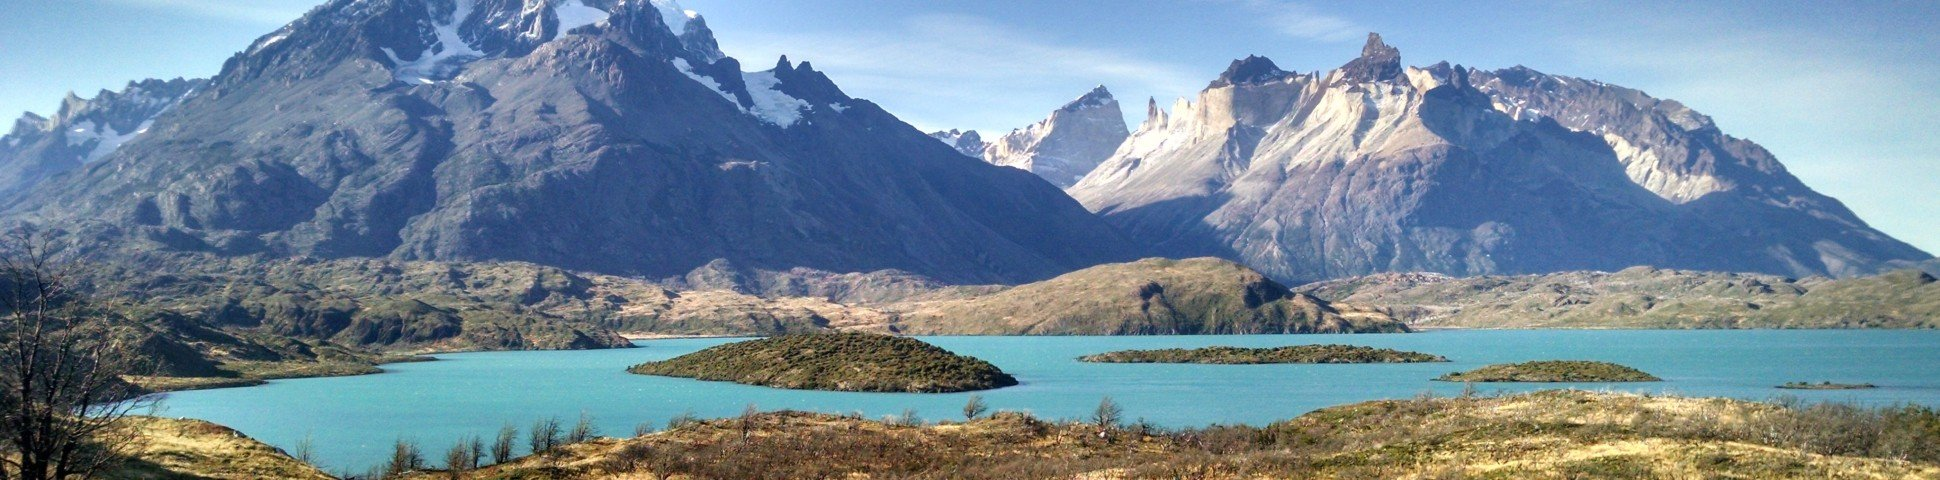 Beautiful turquoise lake in the Torres del Paine National Park (Chile)